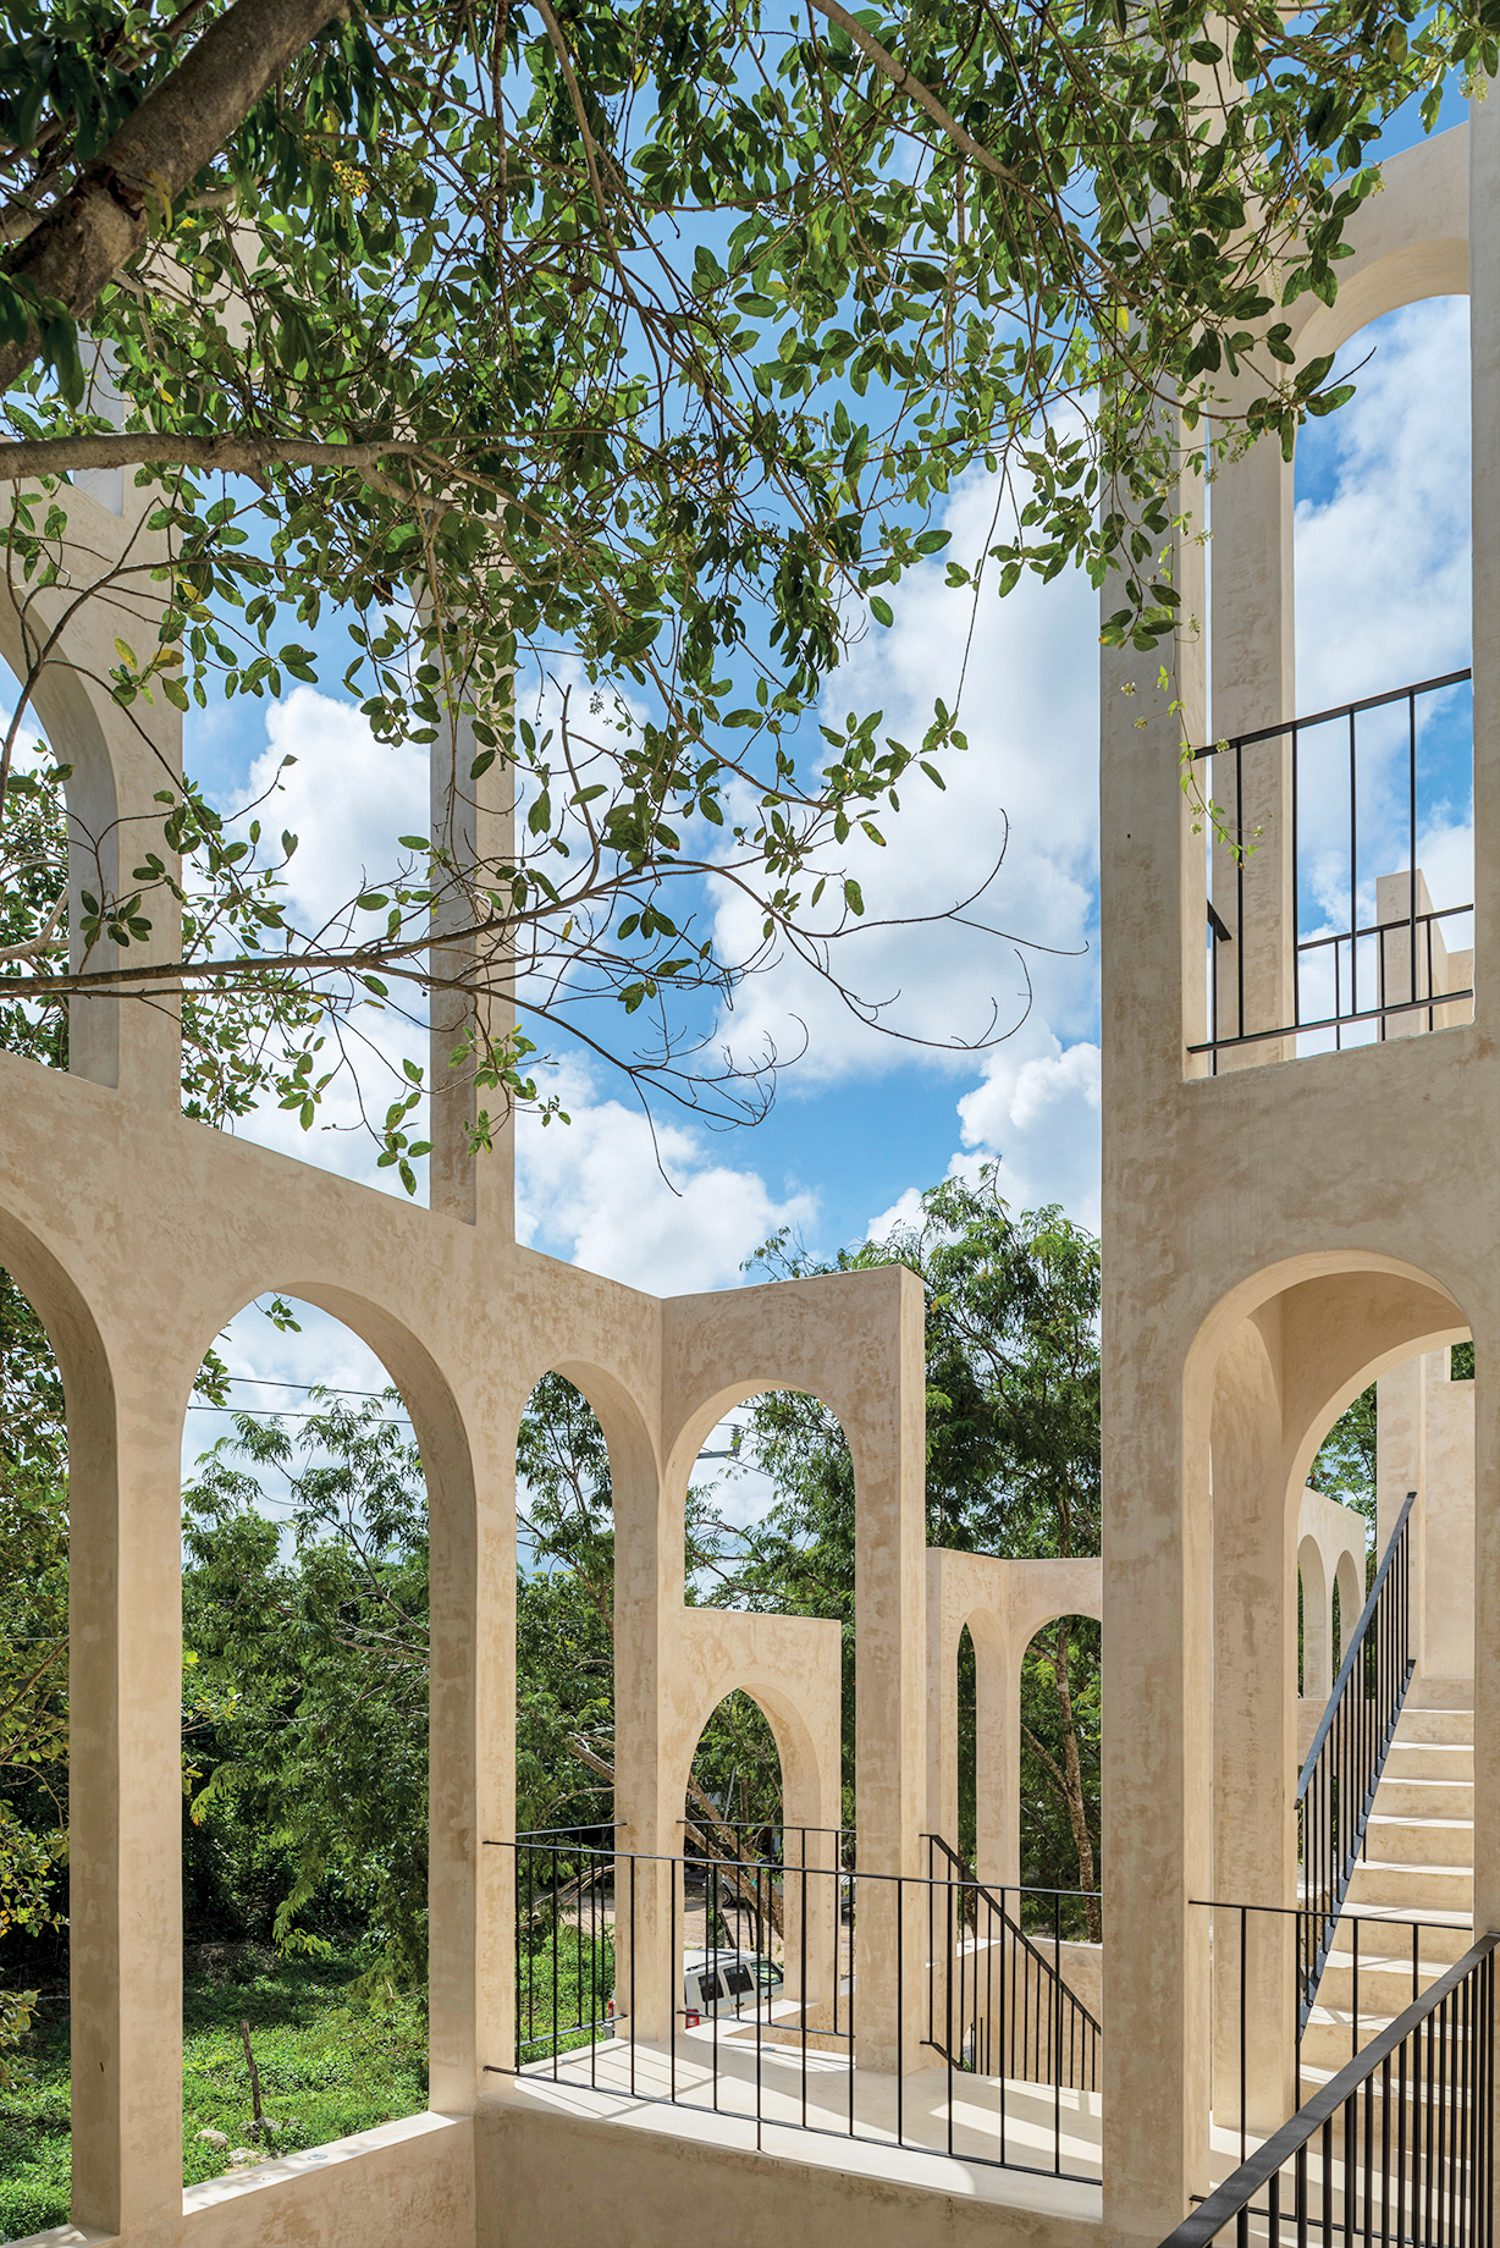 A sculptural collision of arches frames dramatic views of the jungle.